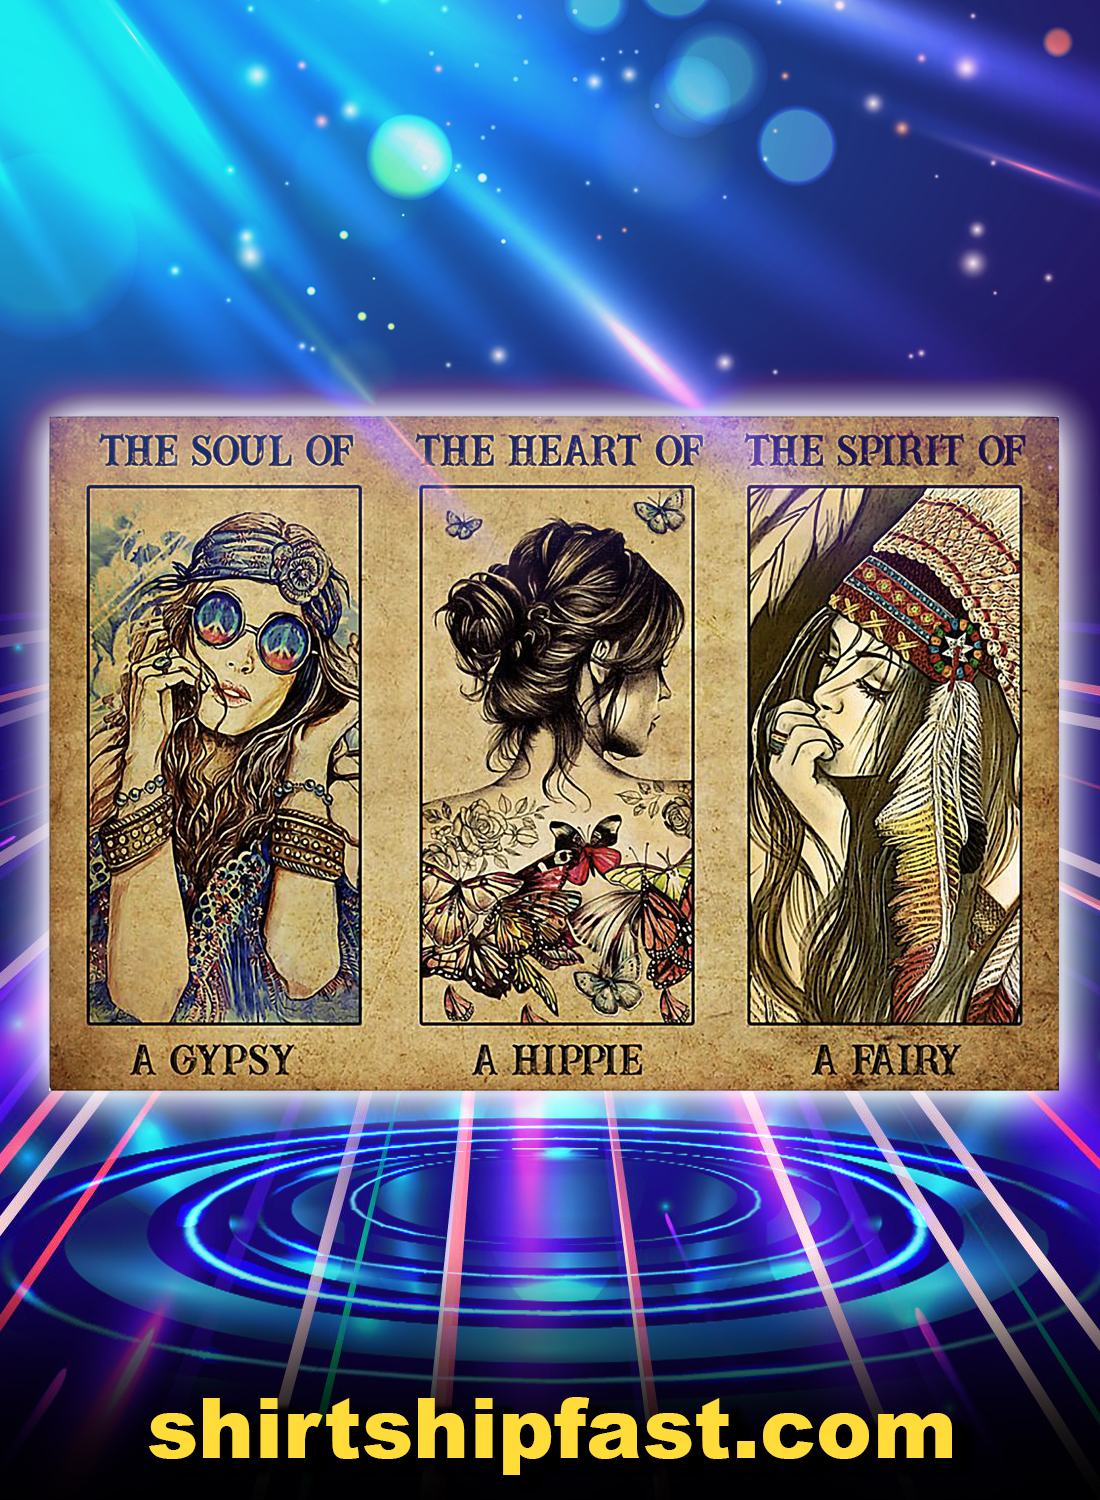 The soul of a gyspy the heart of a hippie the spirit of a fairy poster - A4